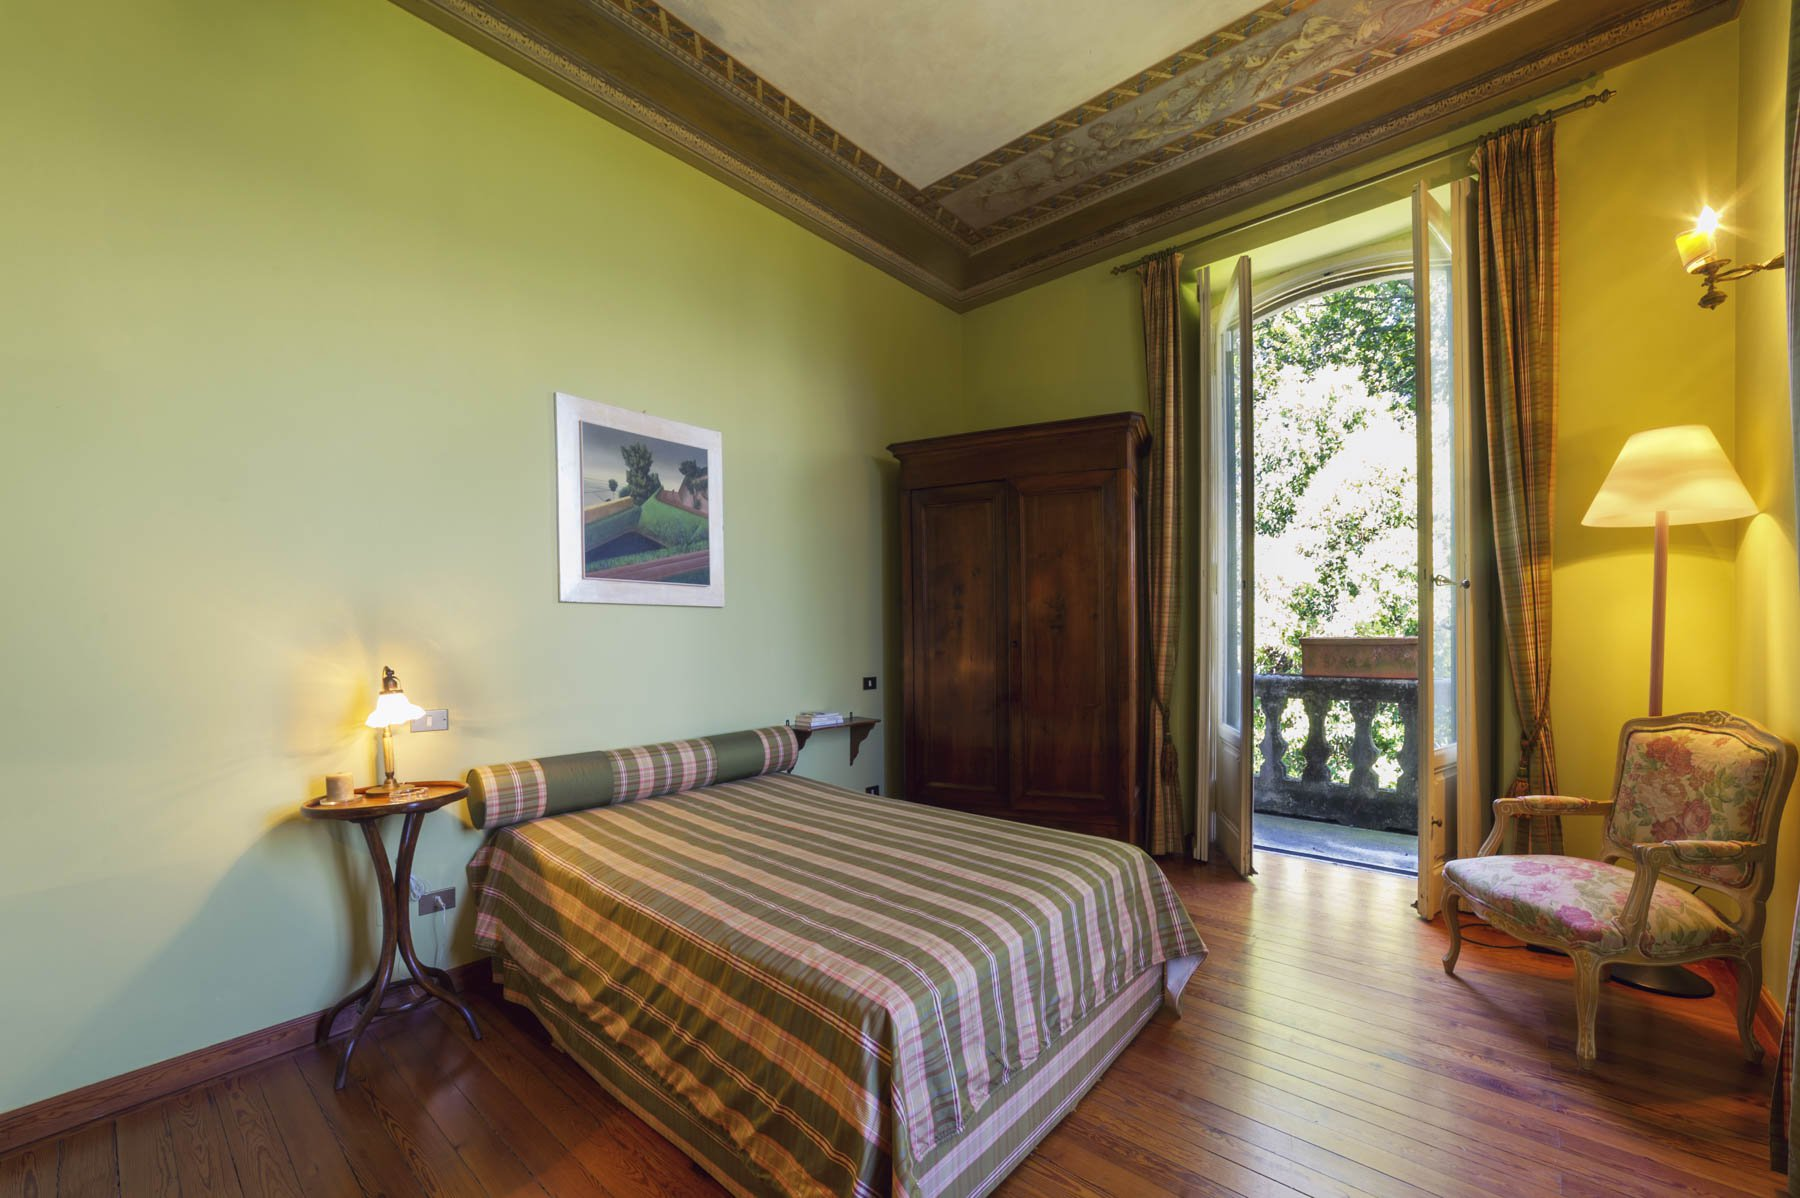 Luxurious apartment for sale in Stresa - master bedroom